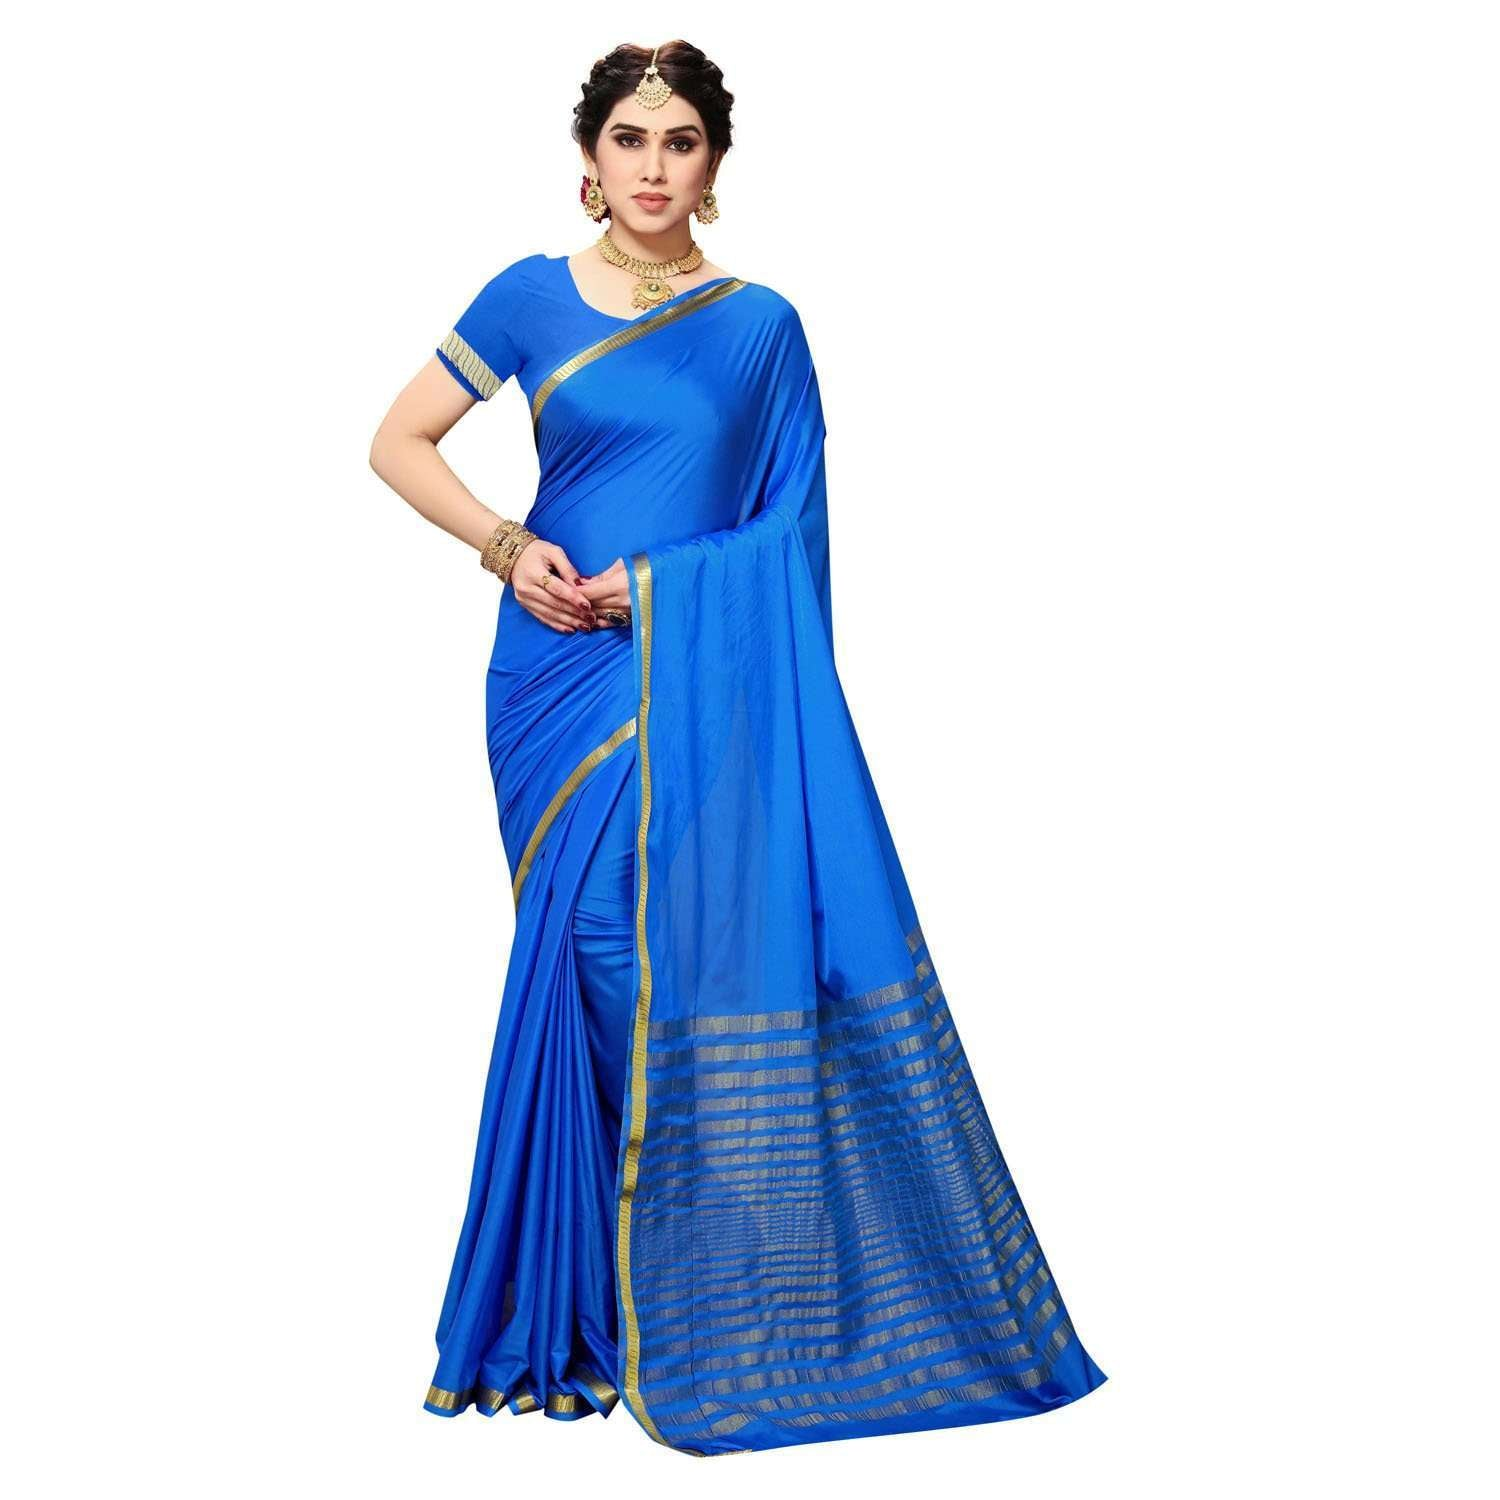 Arars Women's Kanchipuram Kanjivaram Pattu Style Artificial Plain Silk Saree With Blouse (480 ROYAL )